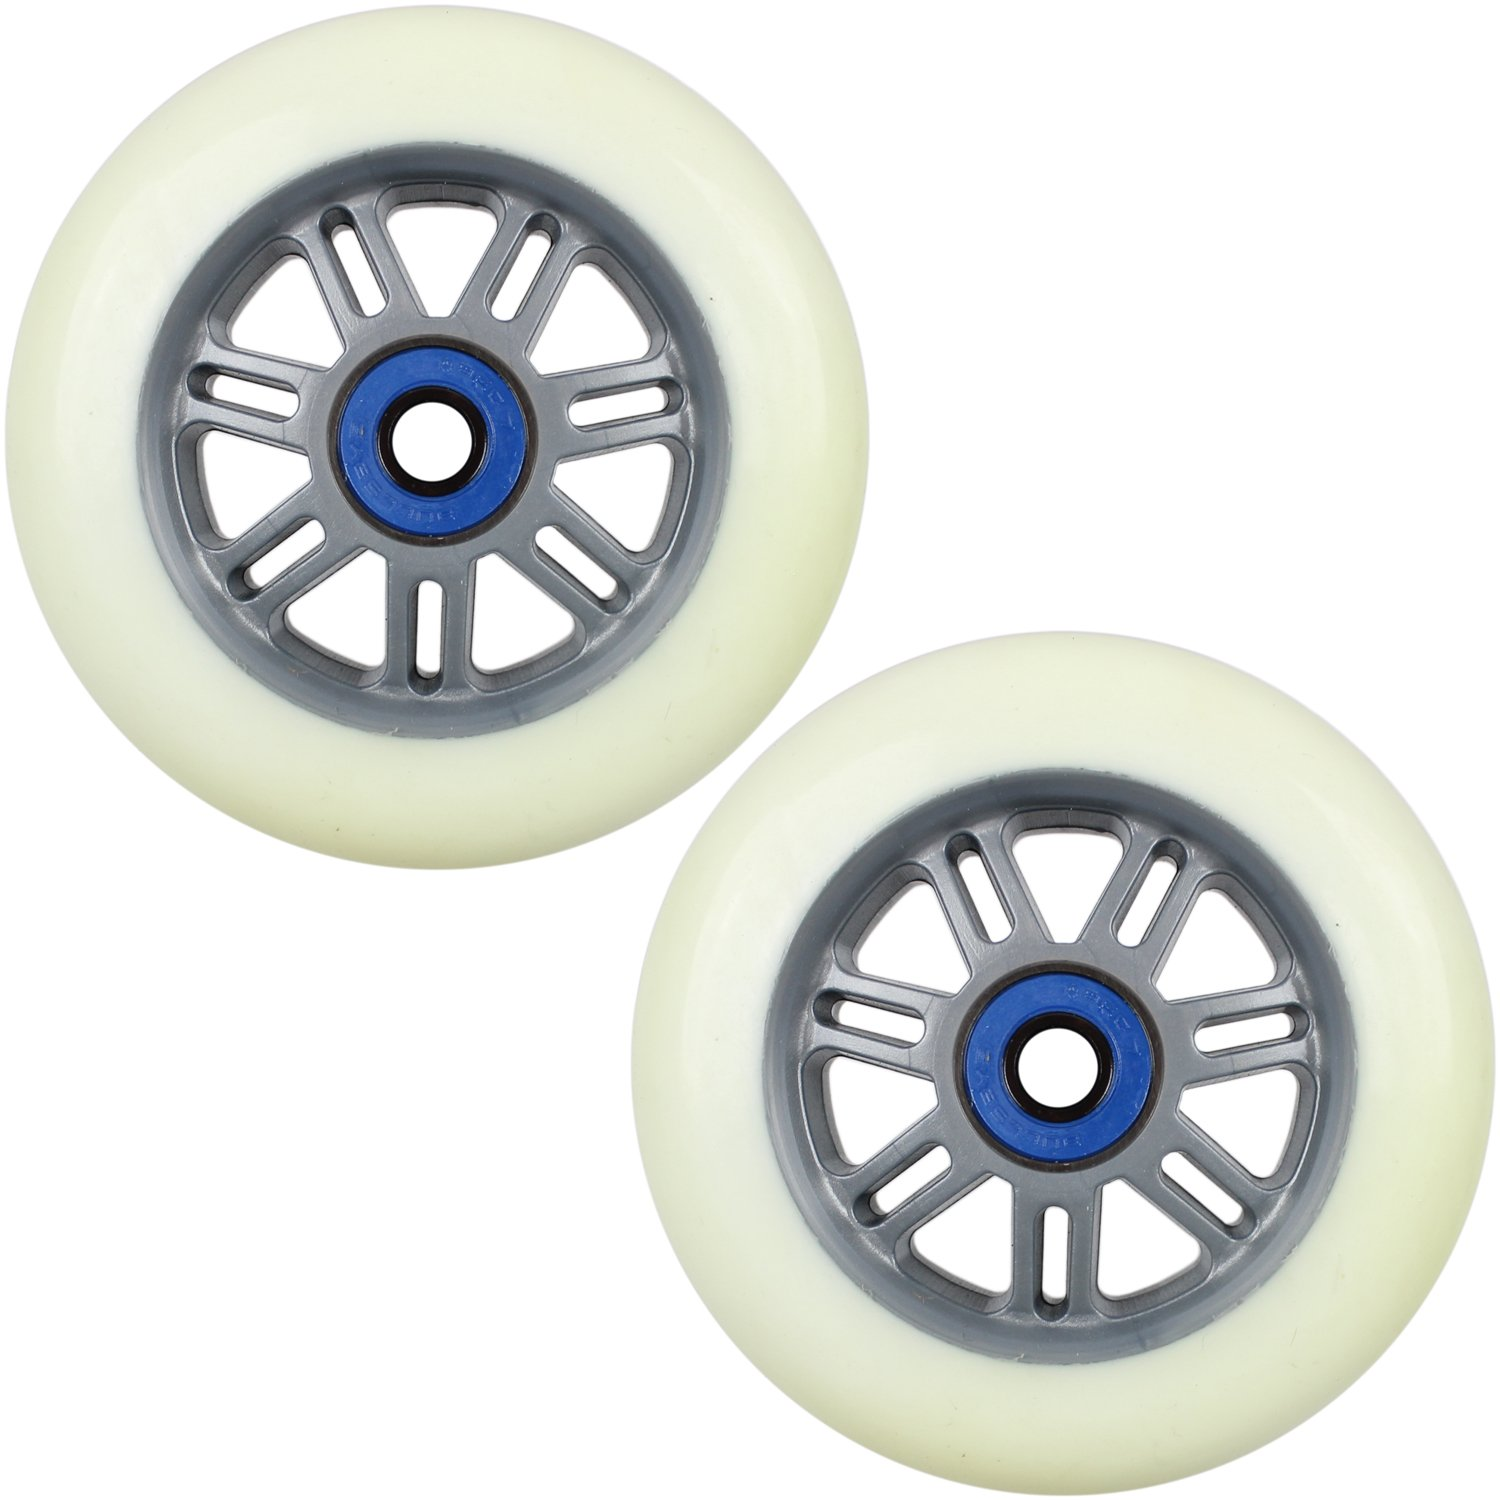 Kick Push This listing is for a set of two Razor Scooter wheels. Here is the White/Grey model from The size is 100mm with a durometer of 90a. Bearings are included.